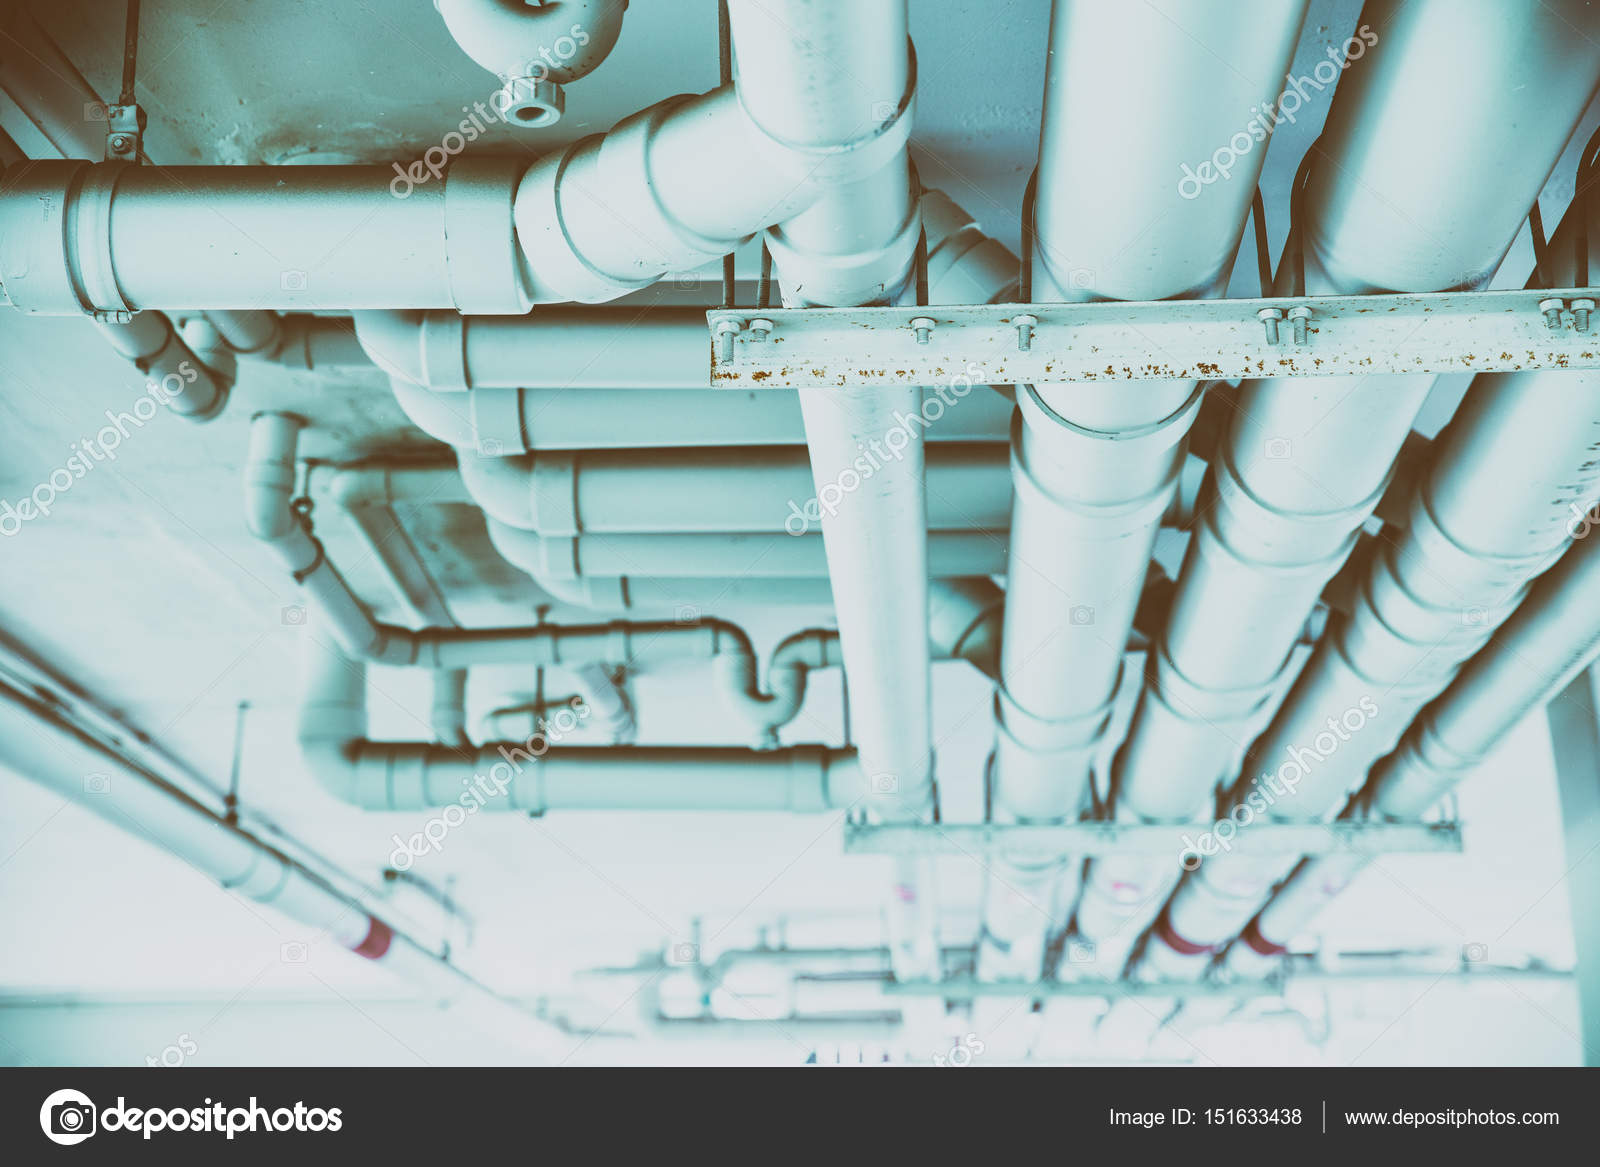 Water pipe engineering, pipeline watering transport system in the ...